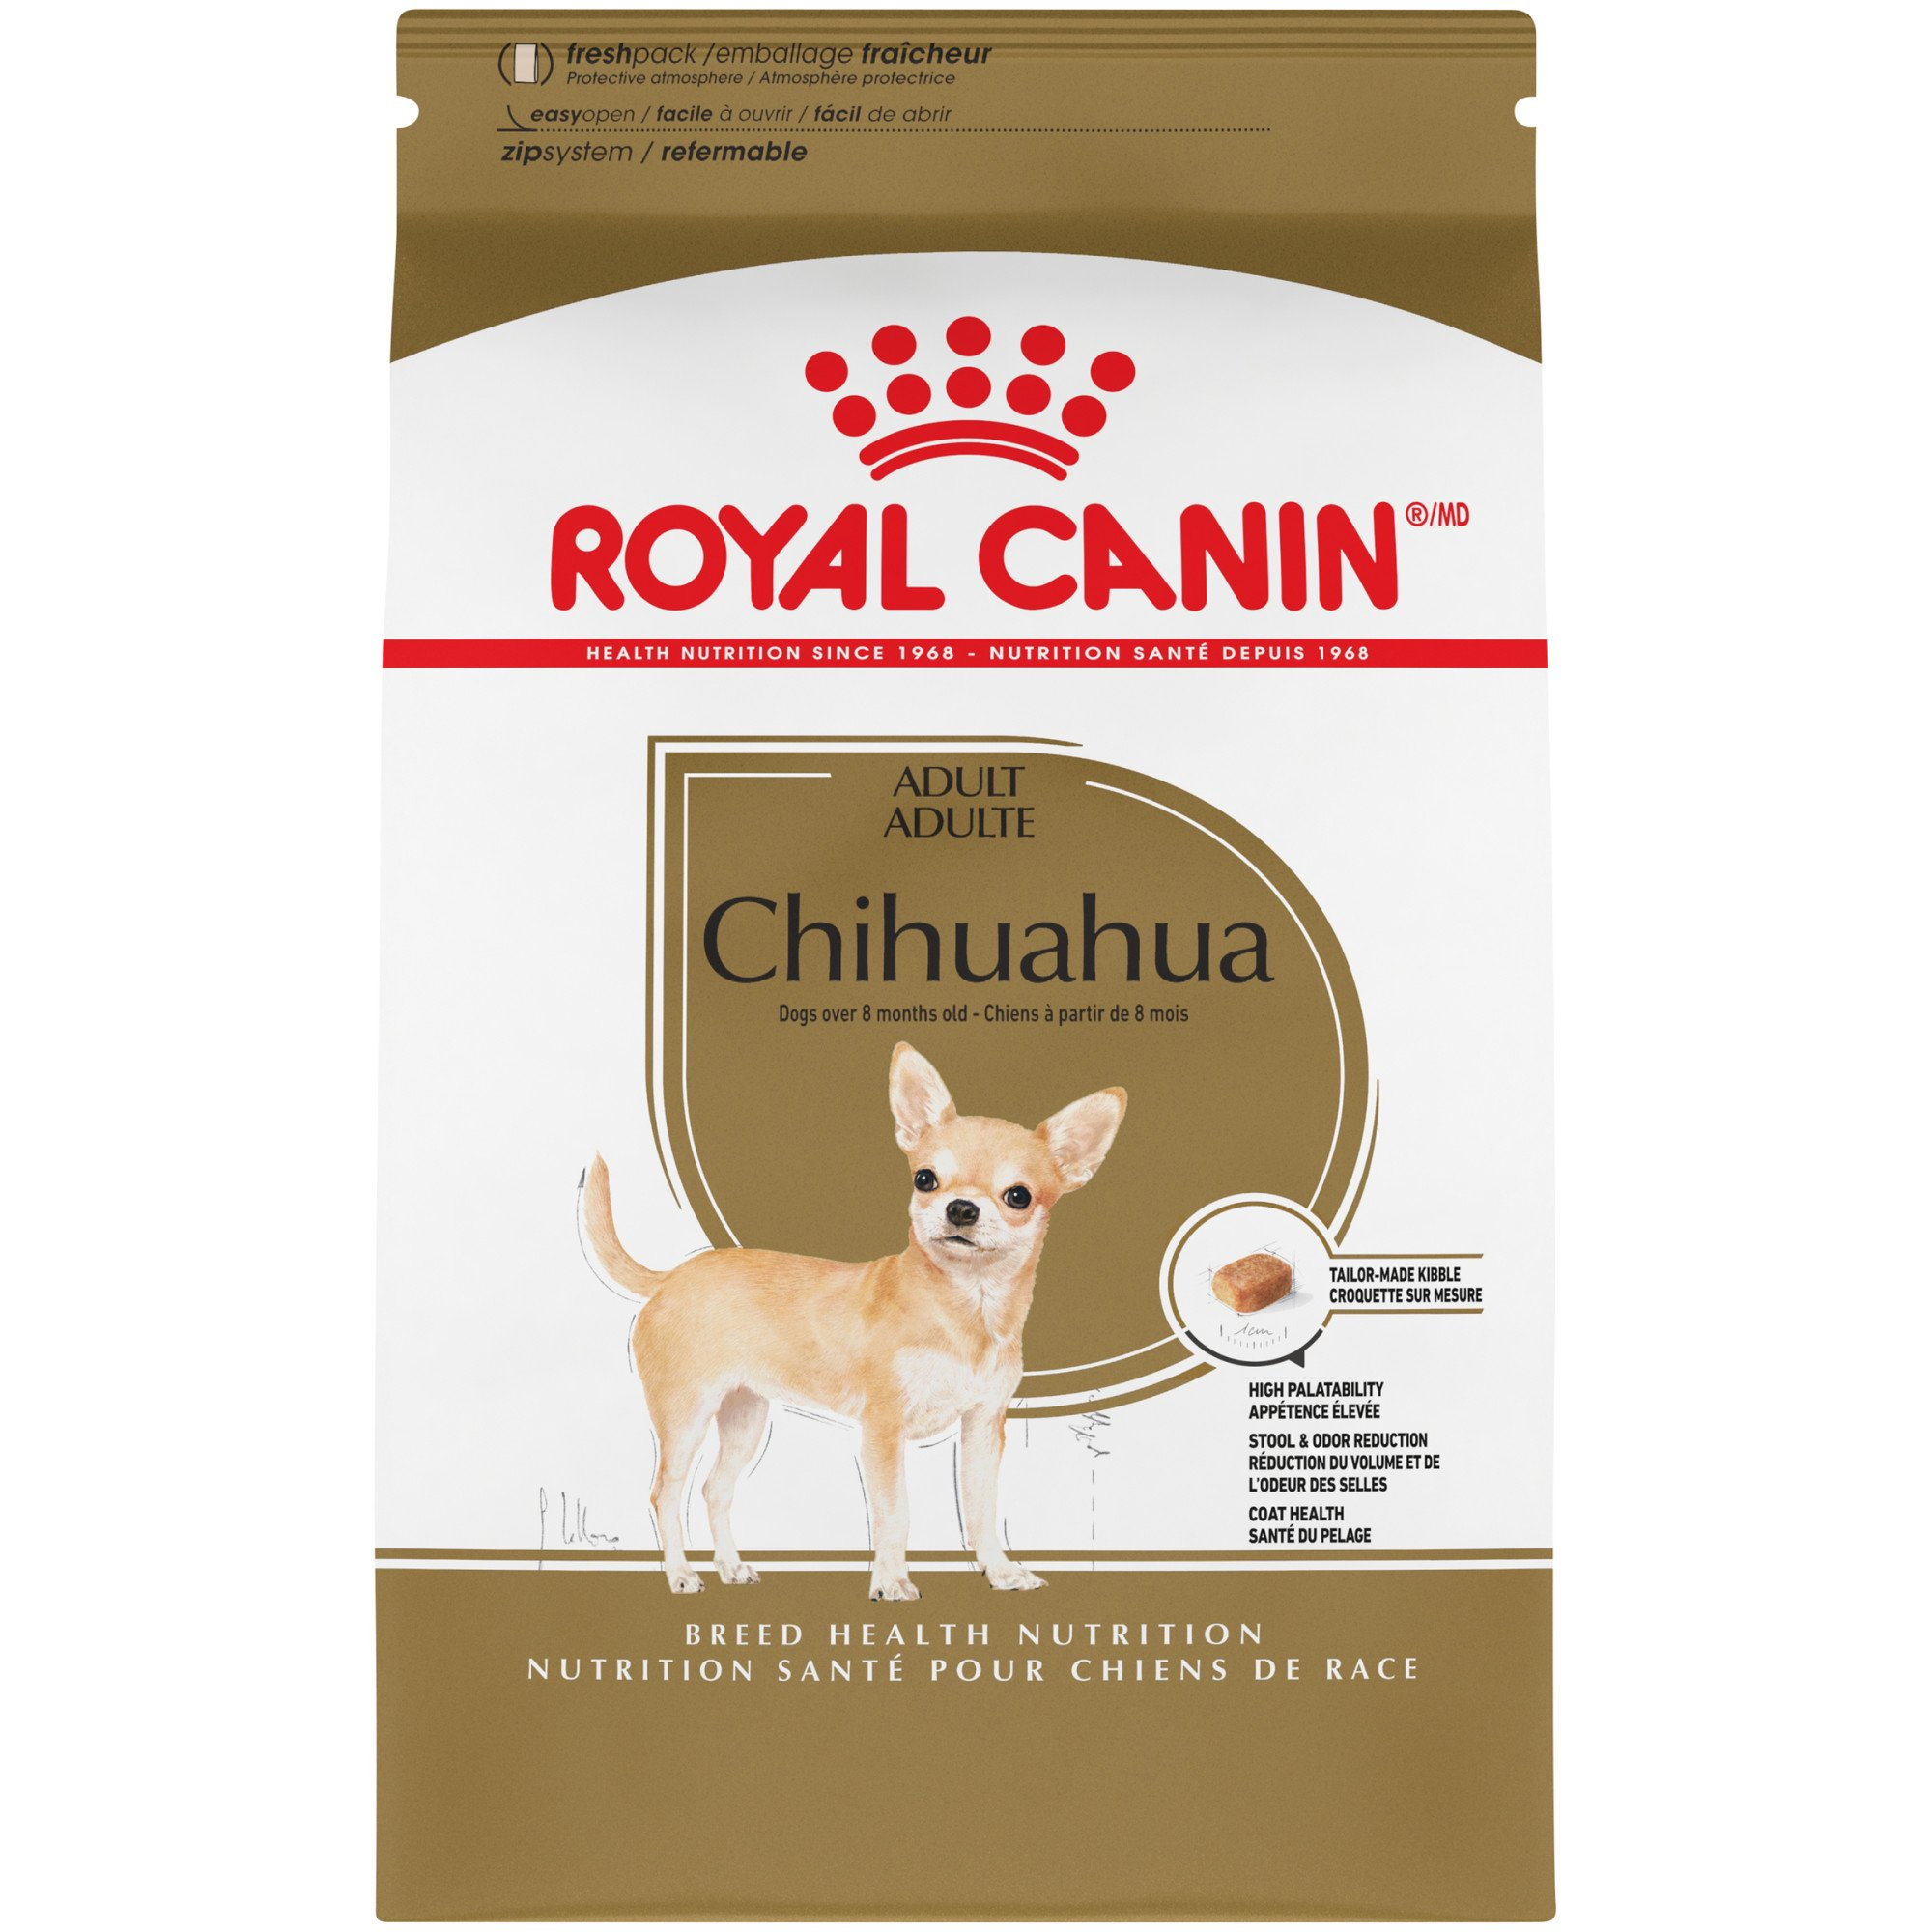 Royal Canin Breed Health Nutrition Chihuahua Adult Dry Dog Food, 10 lbs.